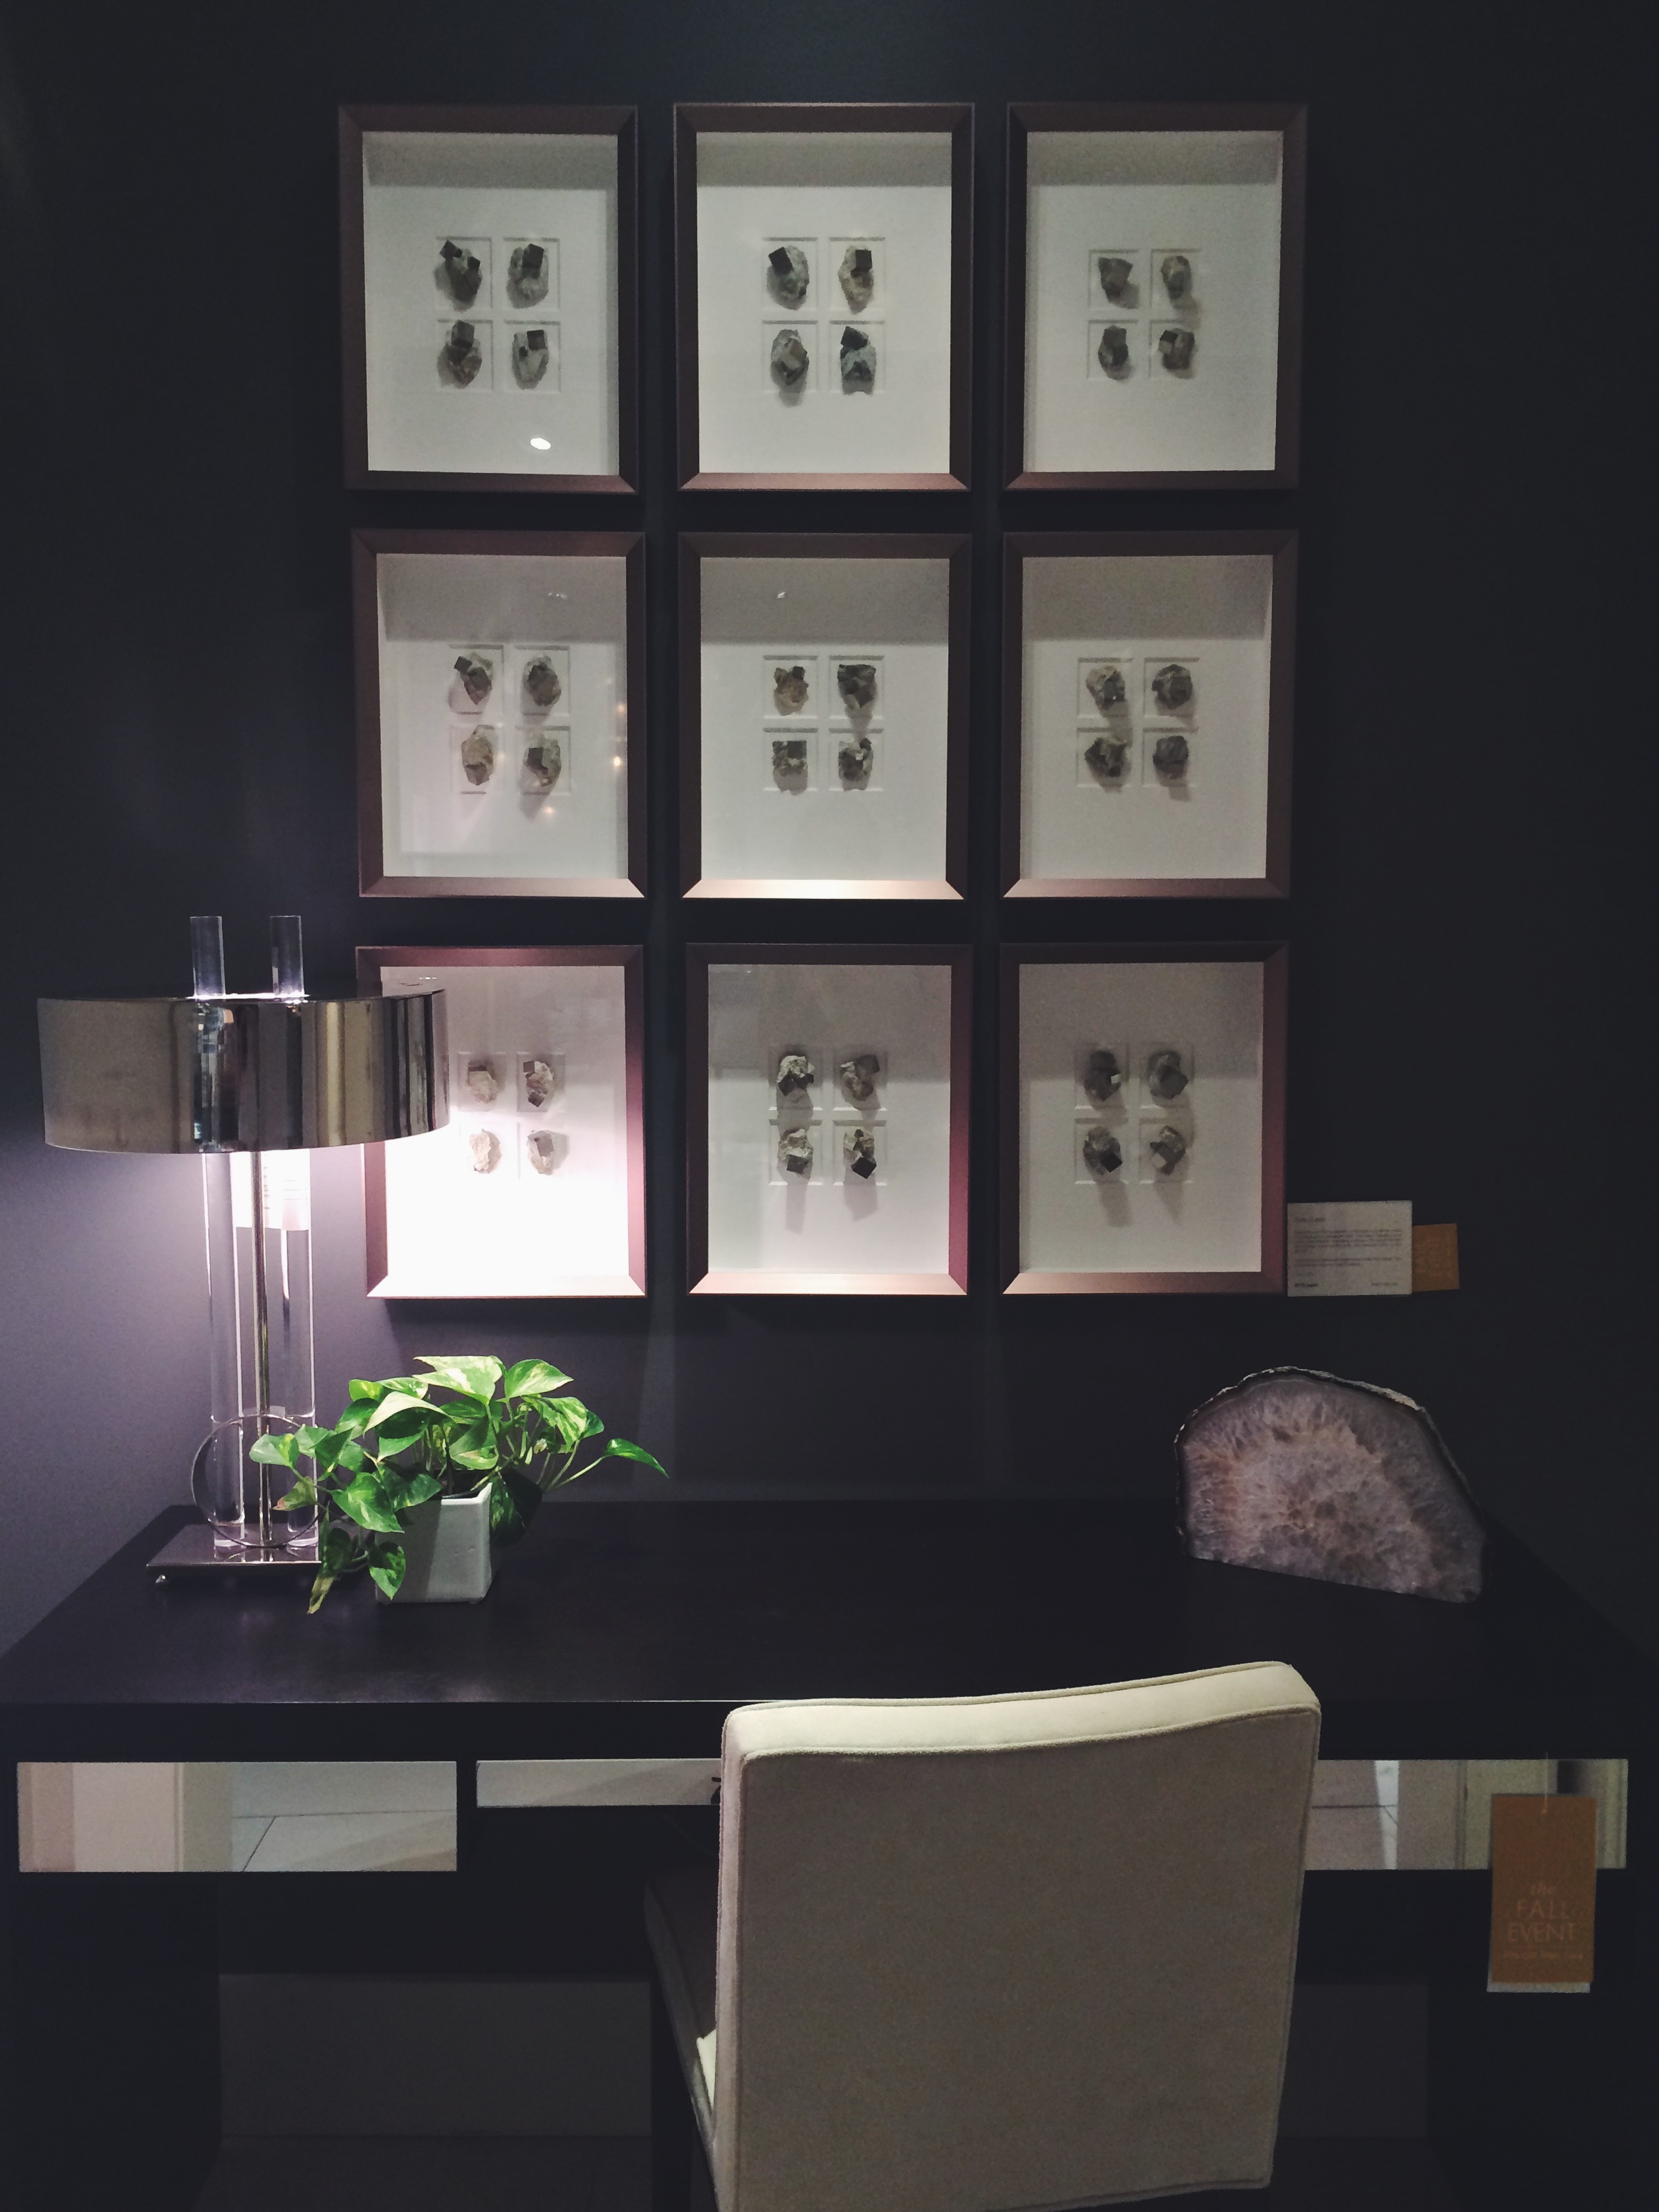 Another furniture design store we wandered through. They had framed geodes in shadow boxes - love!